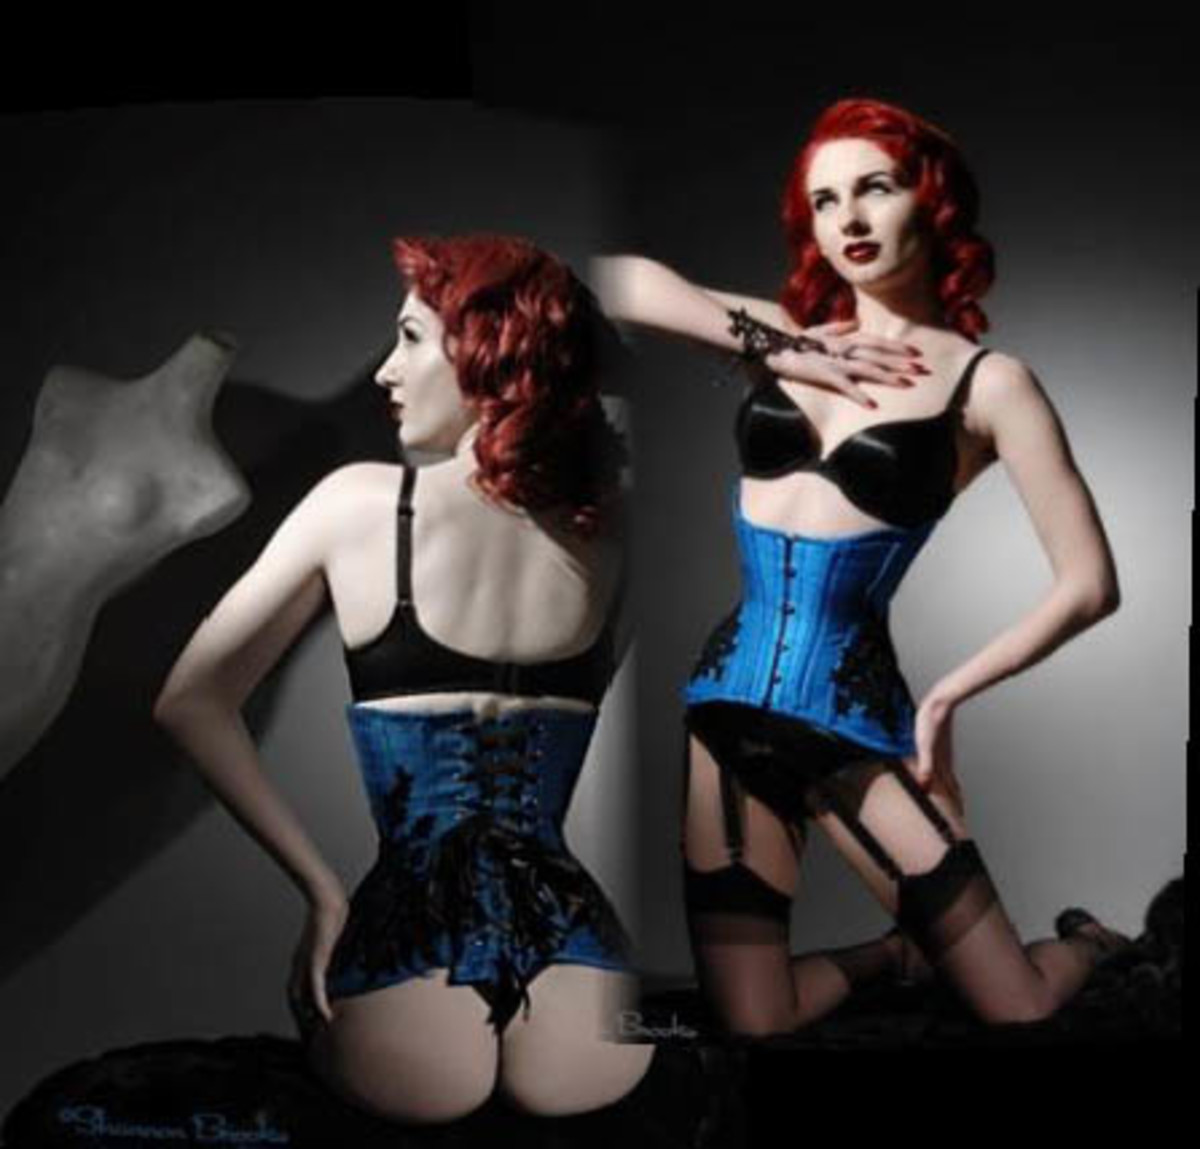 Model Angela Ryan wearing an Electra Design Corset;  www.angelaryan.com Photographer Shannon Brooke; www.shannonbrookeimaging.com